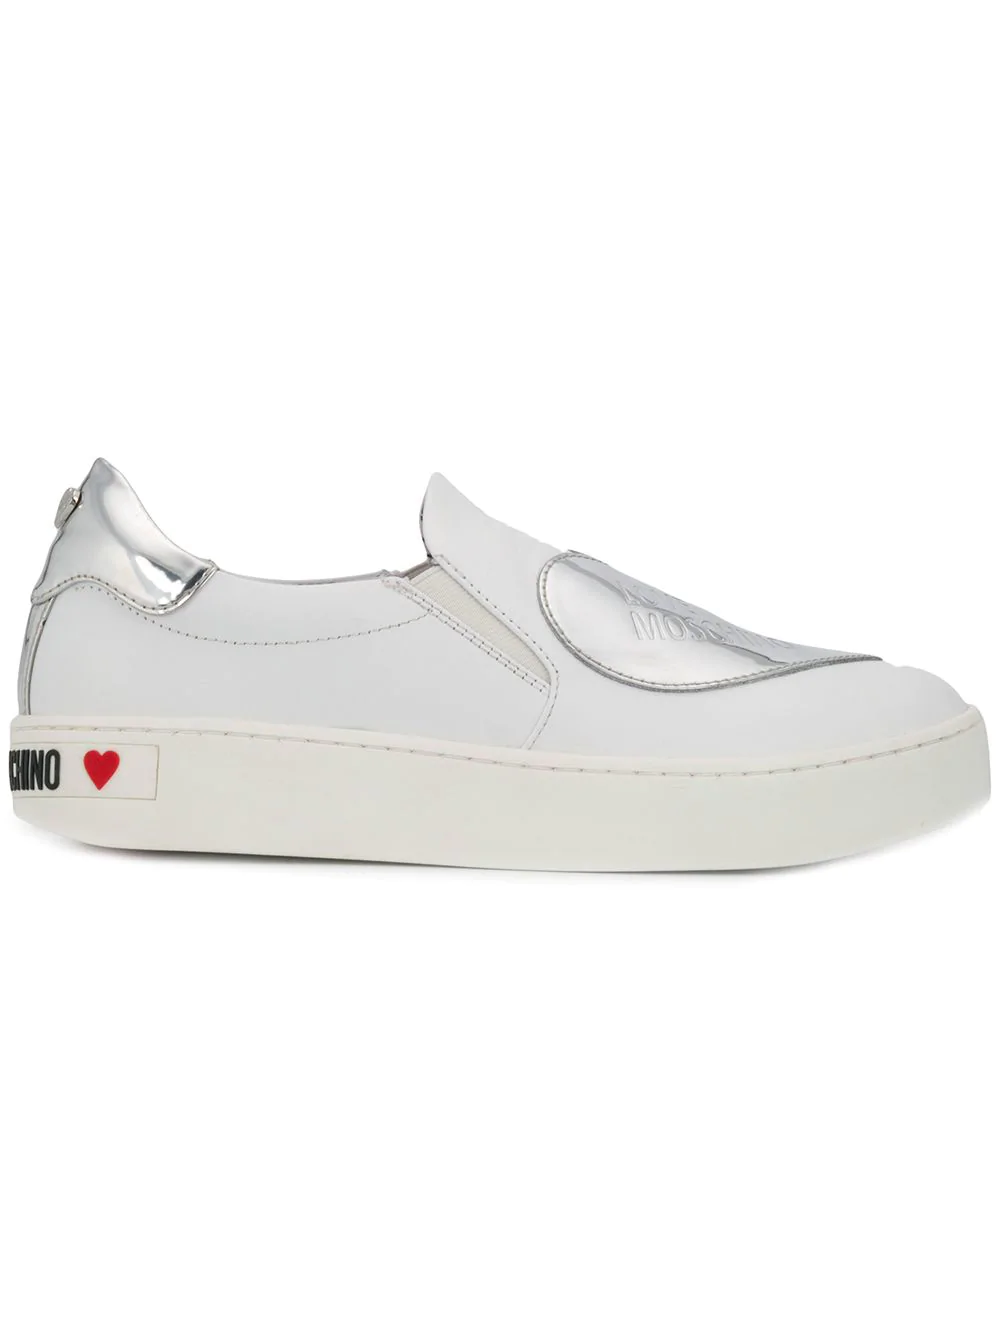 Sneakers Moschino Love WhiteModesens Heart Patch On Slip 8XNknZ0wOP